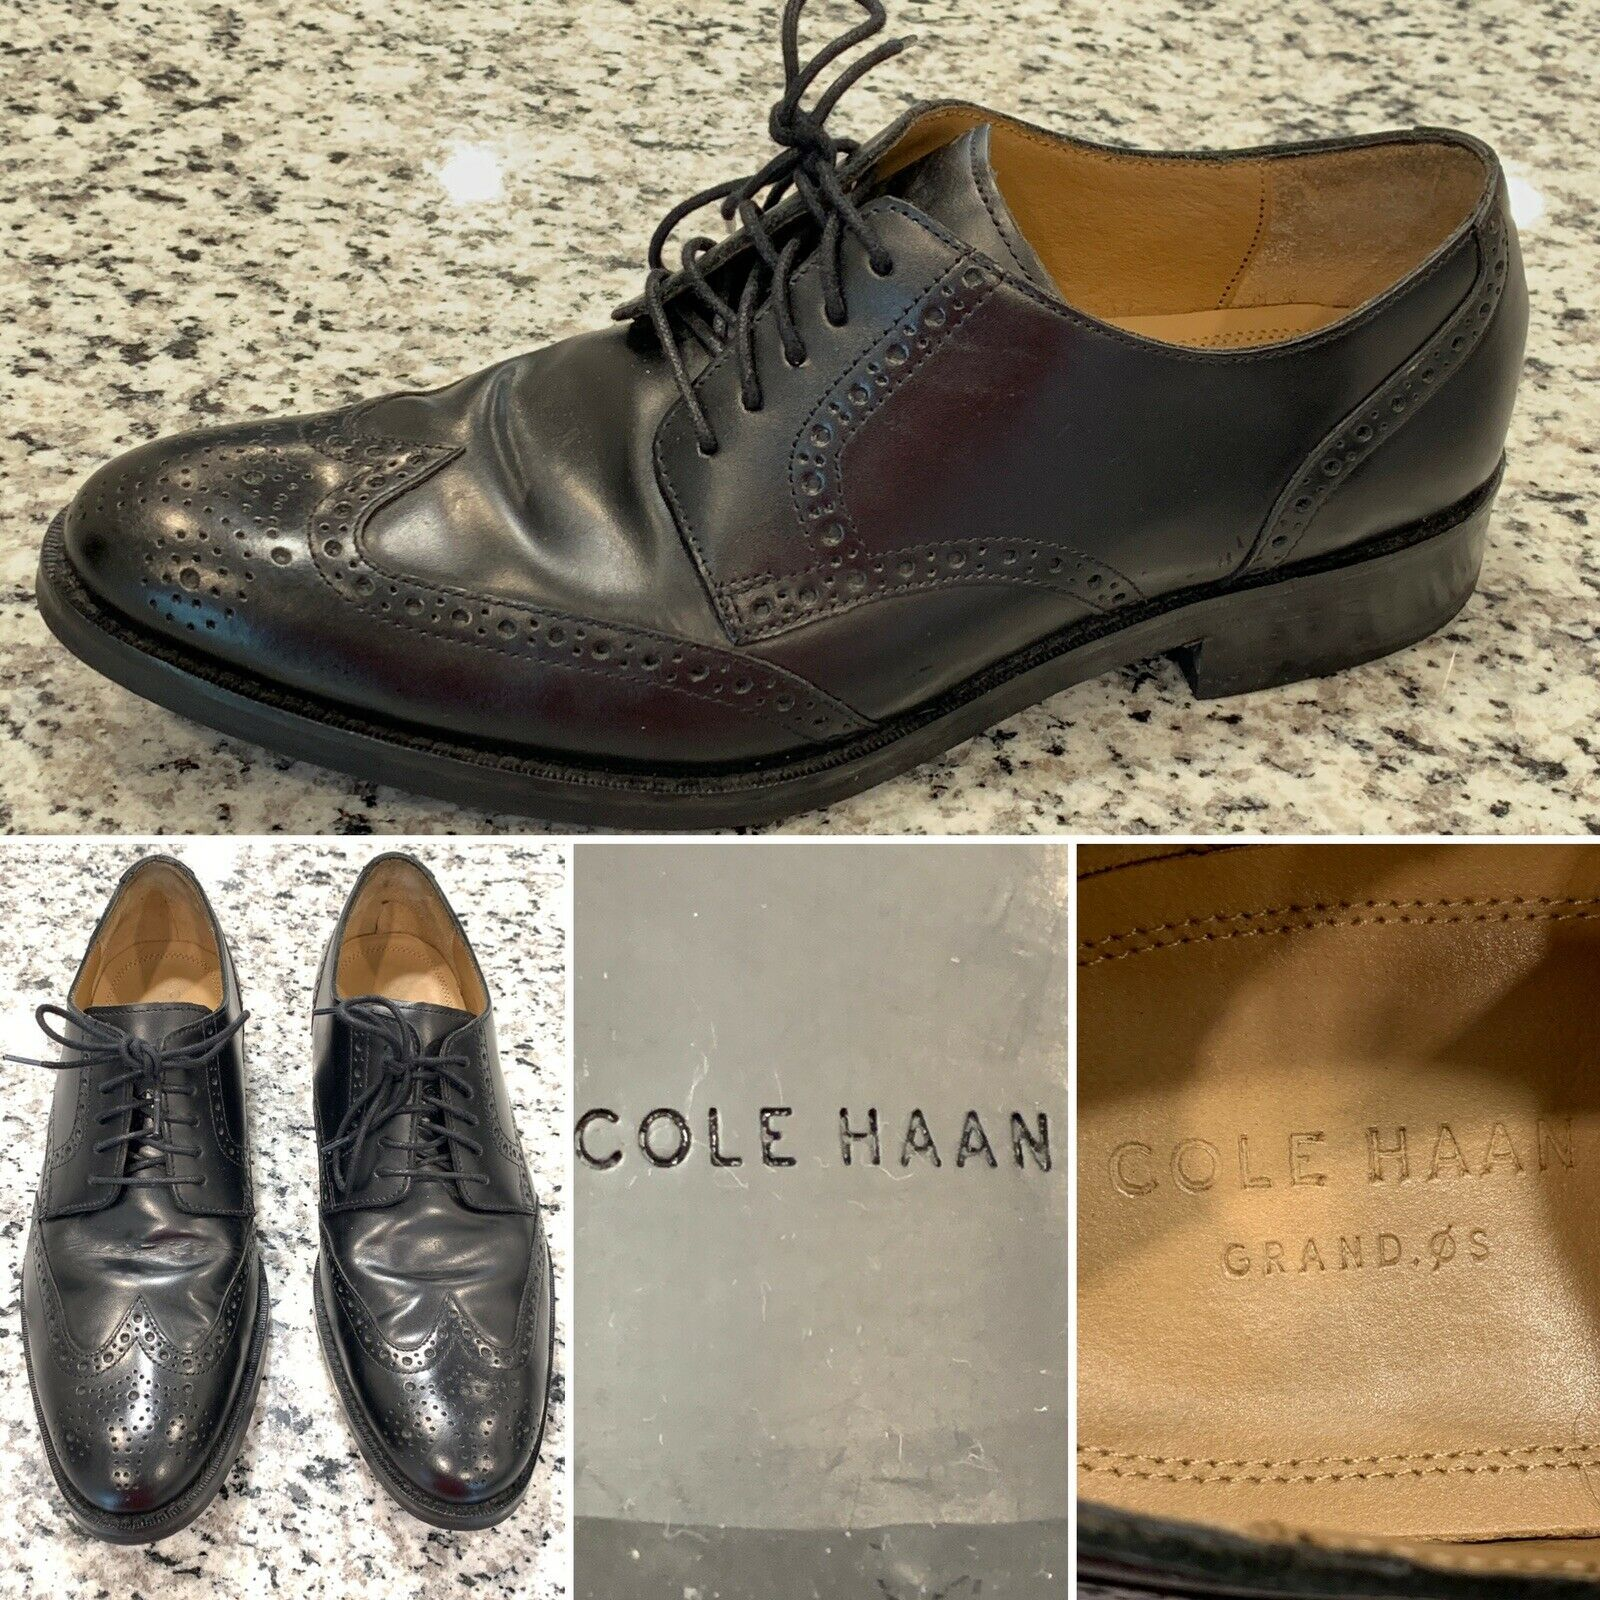 COLE HAAN GRAND OS Mens Black Dress shoes Dress Lace Up Wingtip Oxfords Size 10M